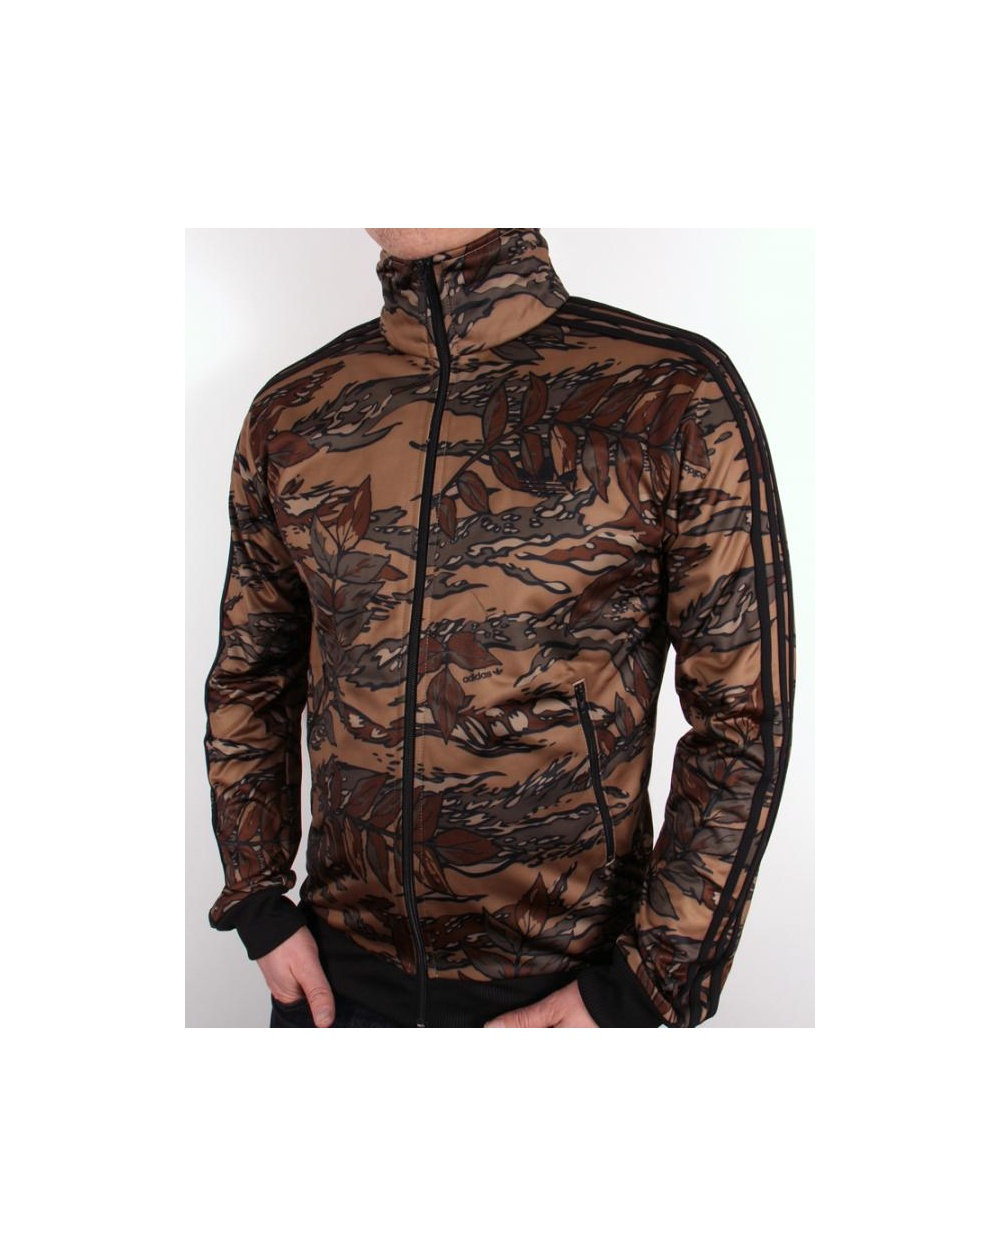 adidas firebird jacket camo. Black Bedroom Furniture Sets. Home Design Ideas